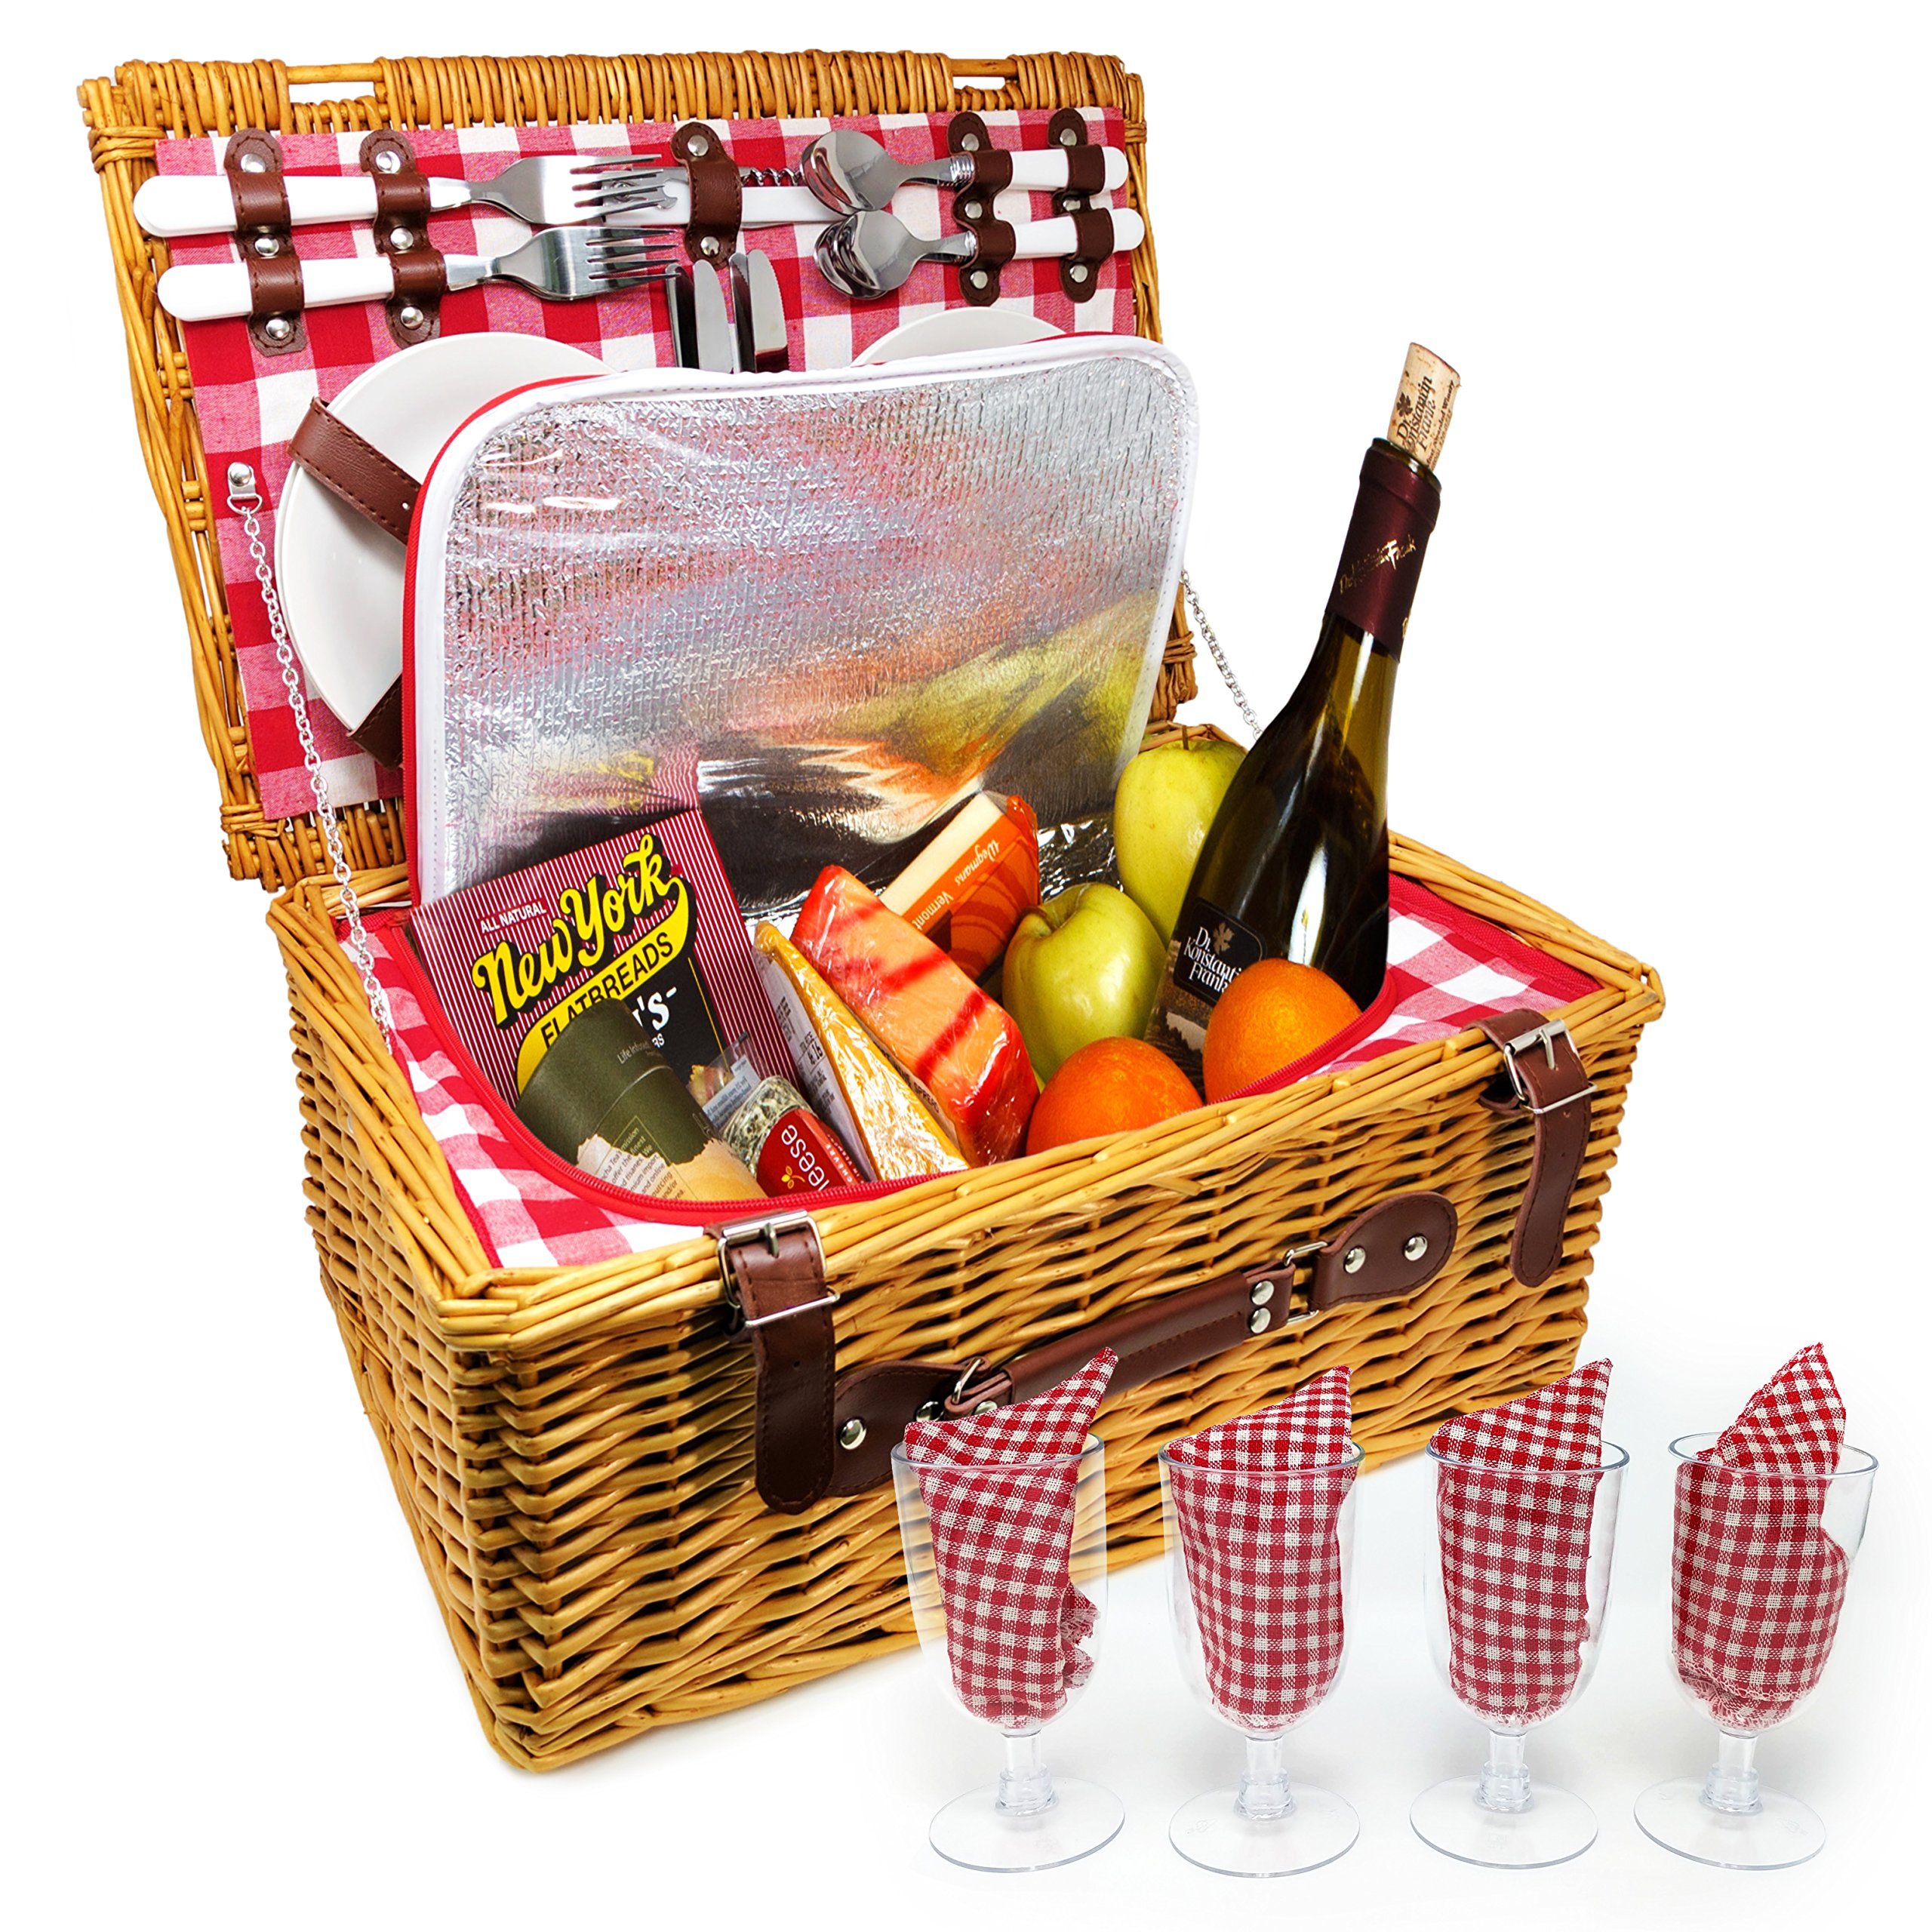 UPGRADED Picnic Basket 2020 Model - INSULATED 4 Person Wicker Hamper - Premium Set with Plates, Wine Glasses, Flatware and Napkins by Nature Gear